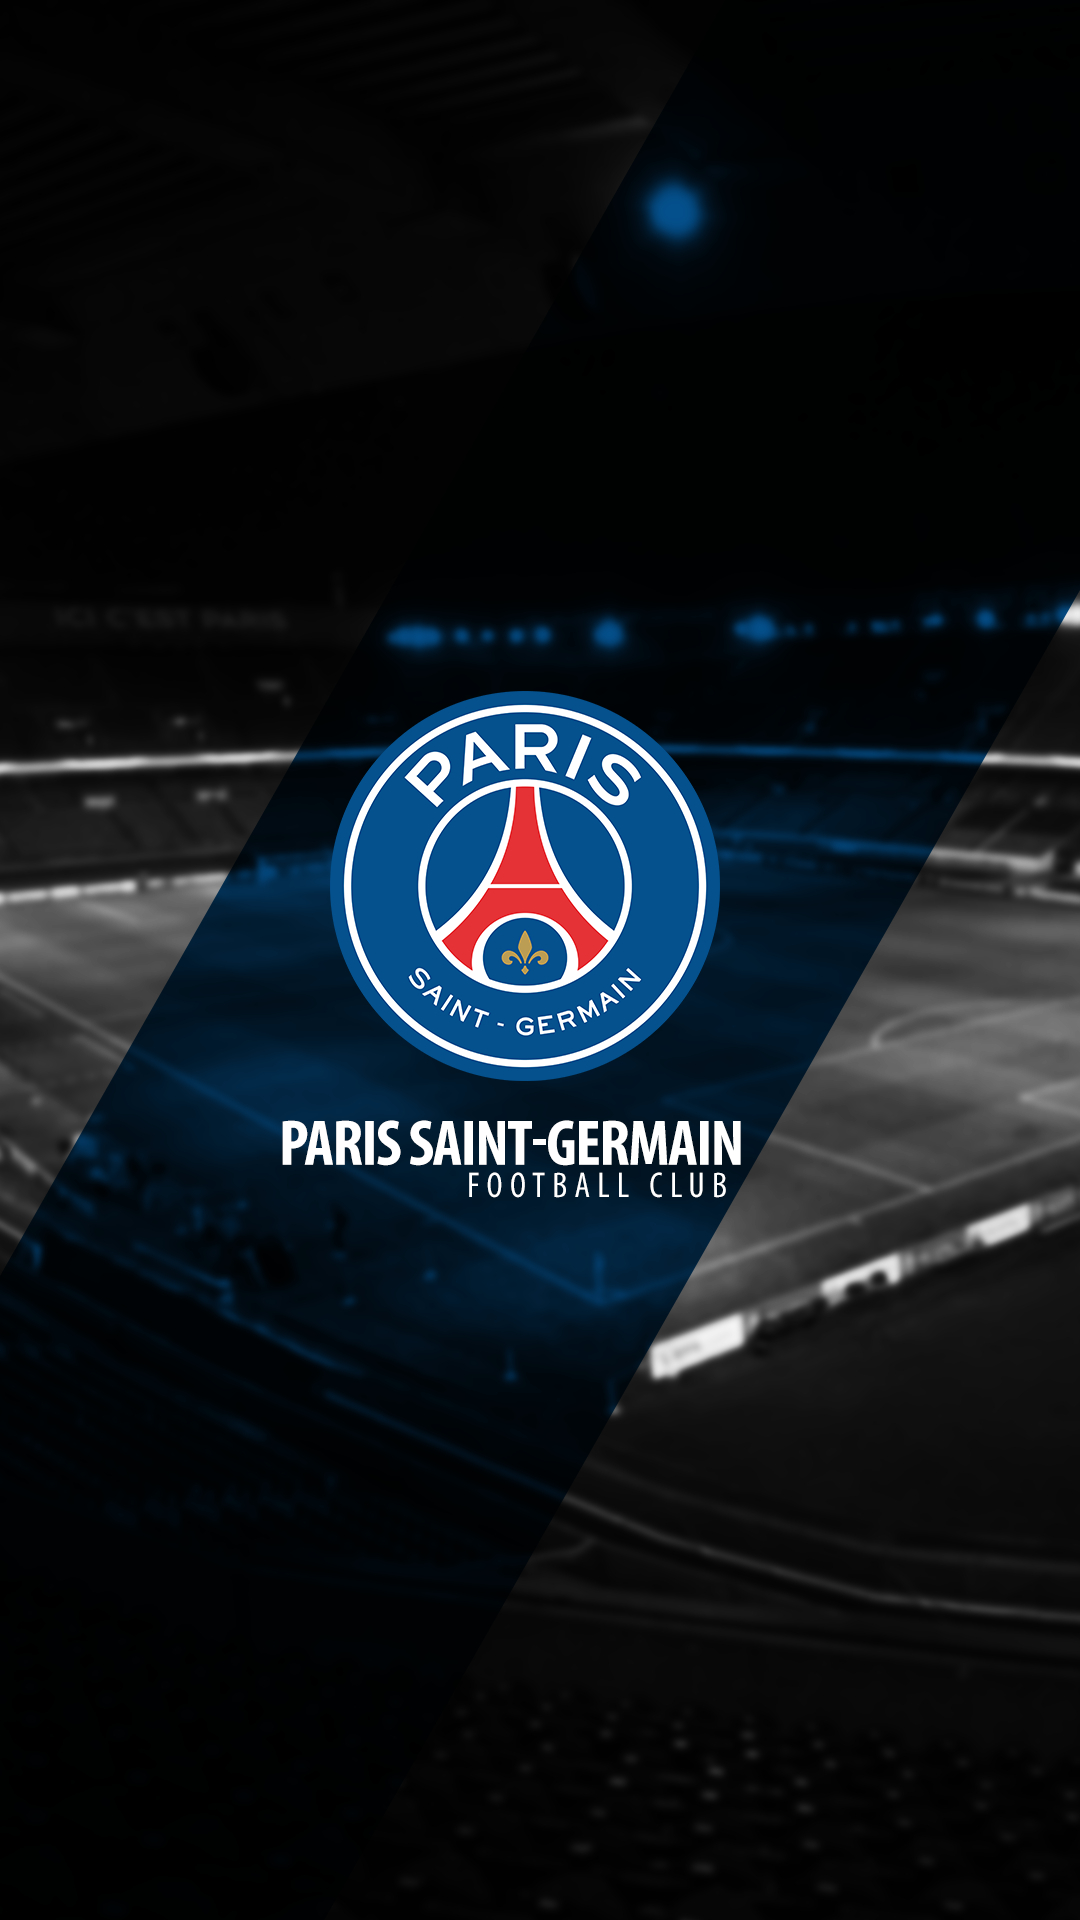 paris saint germain wallpaper iphone | iphone wallpapers ~ sports